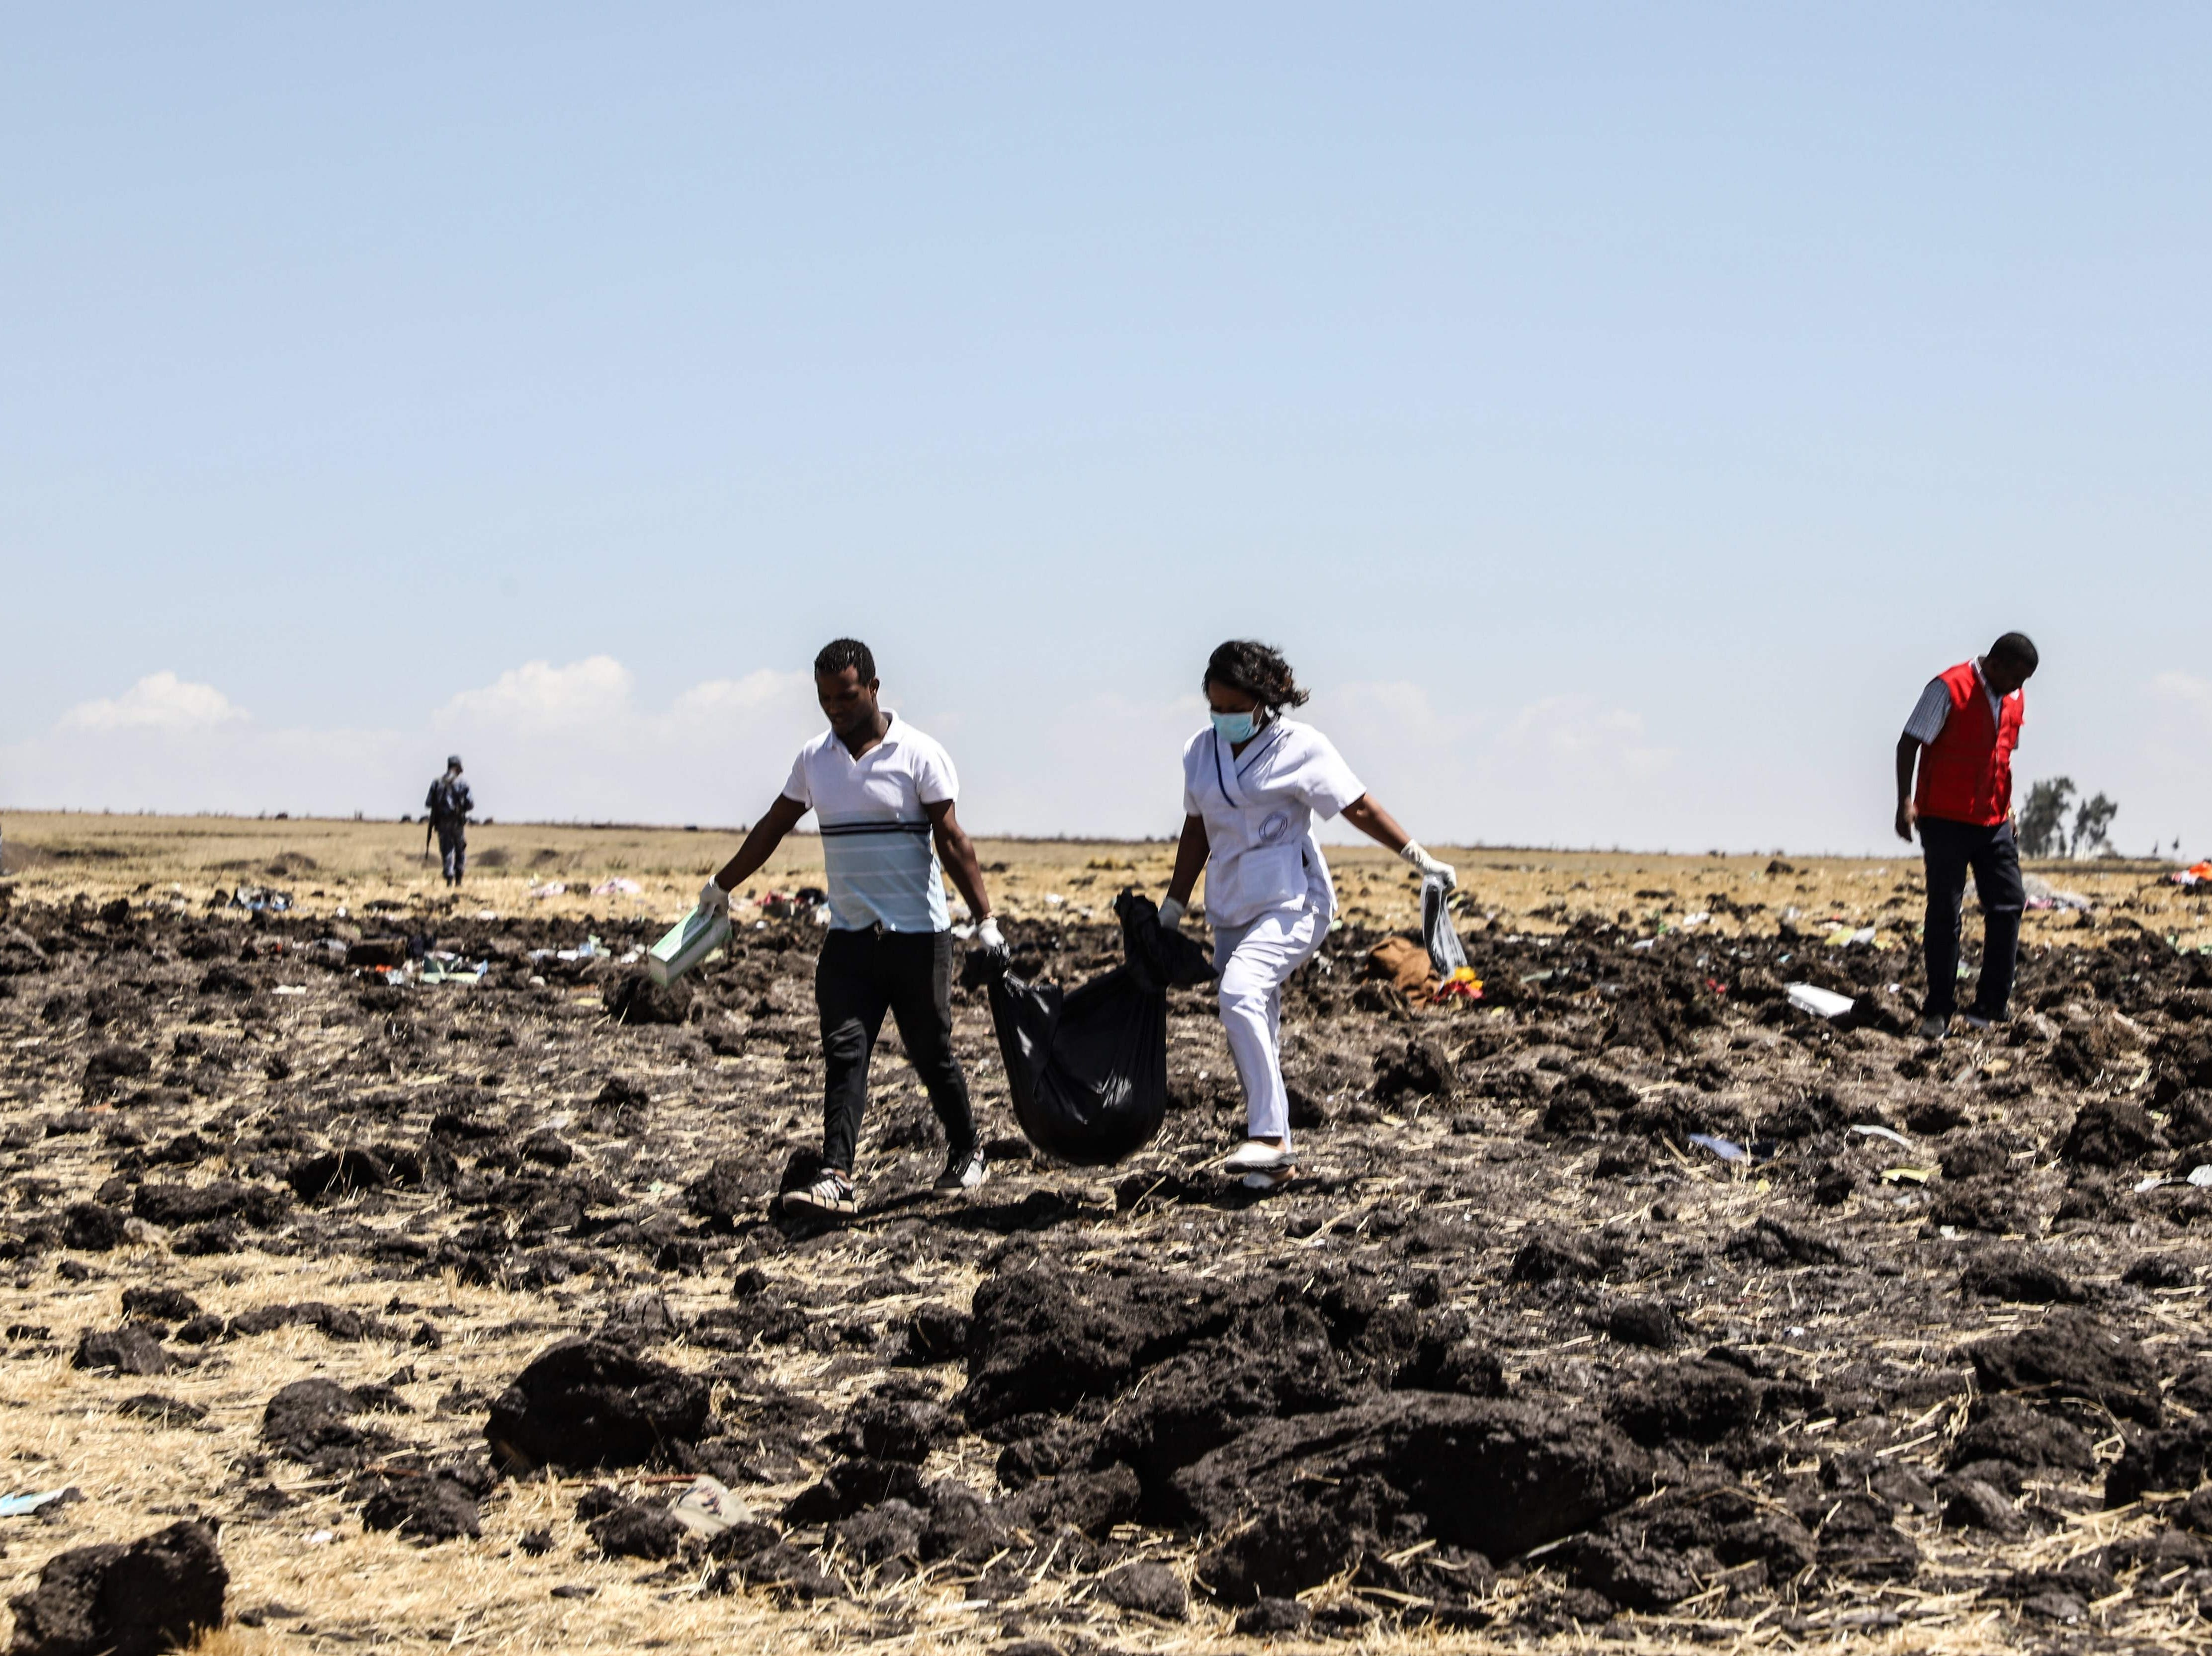 A rescue team carries a victim at the crash site of Ethiopia Airlines Flight 302 near Bishoftu, a town about 60 km southeast of Addis Ababa, Ethiopia